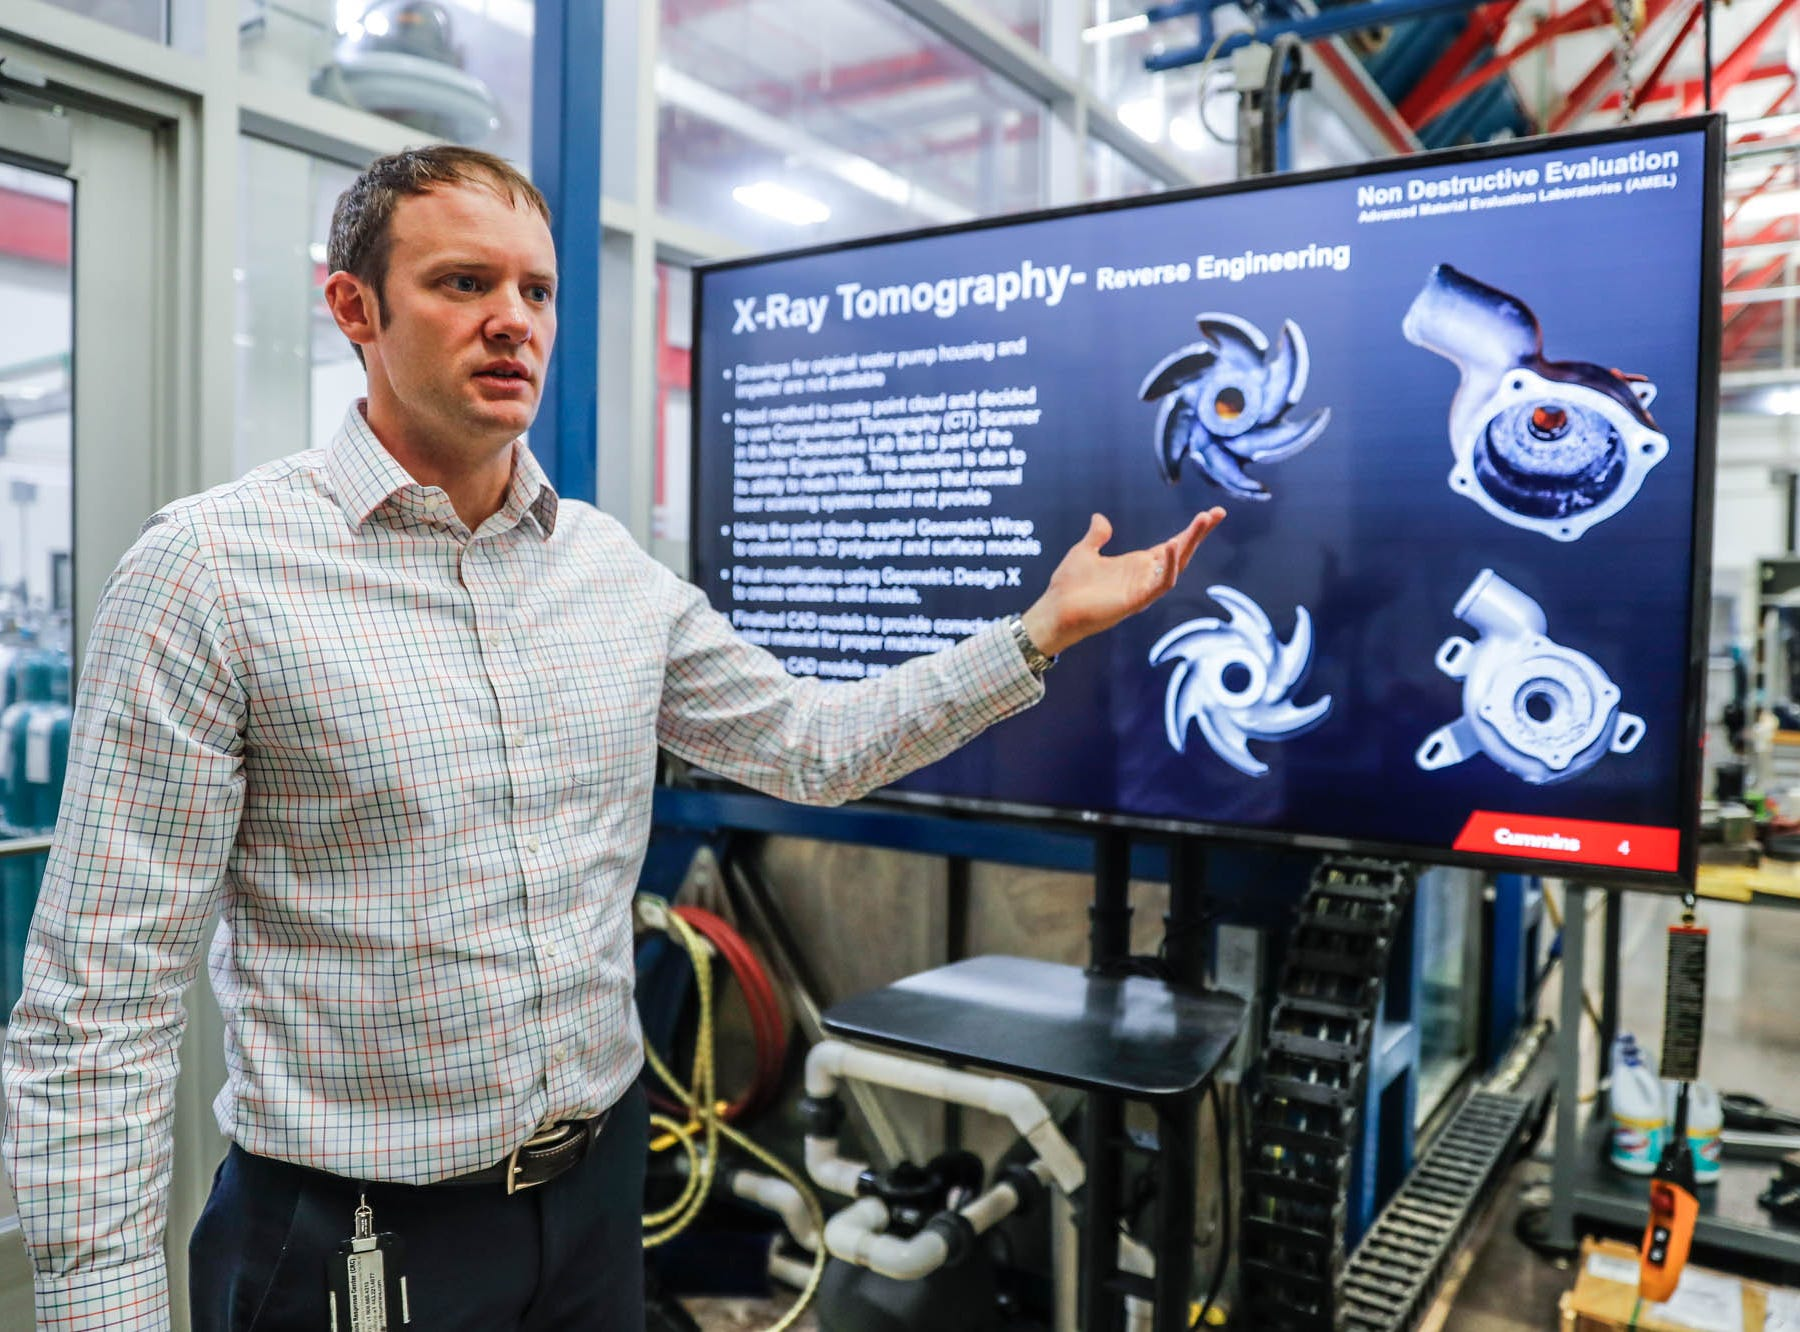 Materials Science Manager, Corey Trobaugh, explains reverse engineering using X-Ray Tomography in the Advanced Materials Evaluation Lab at the Cummins Technical Center, 1900 McKinley Ave, Columbus, Ind., on Monday, Jan. 7, 2018.